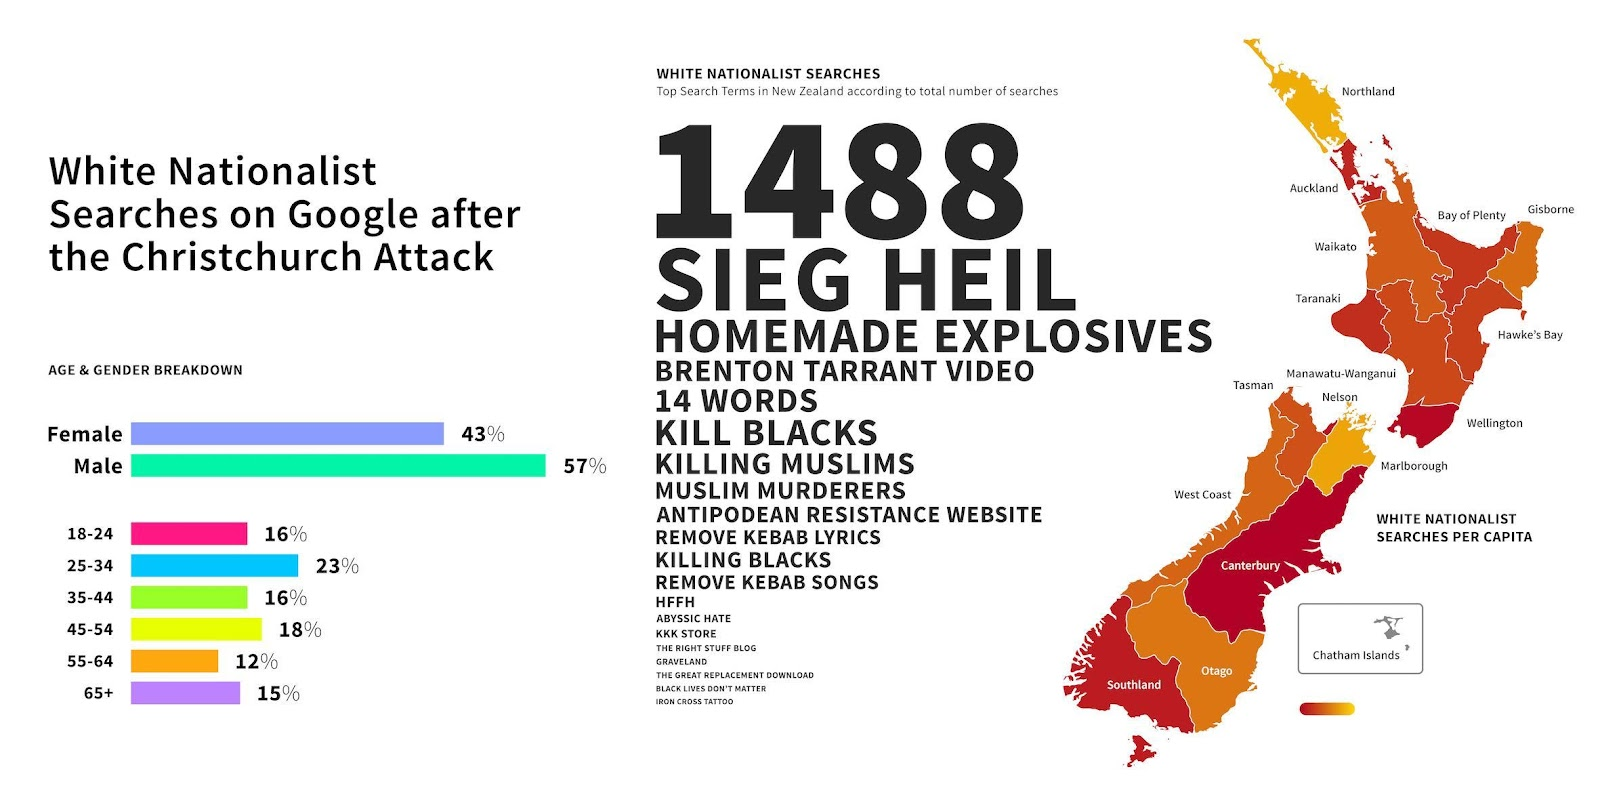 White Nationalist searches on Google after the Christchurch attack